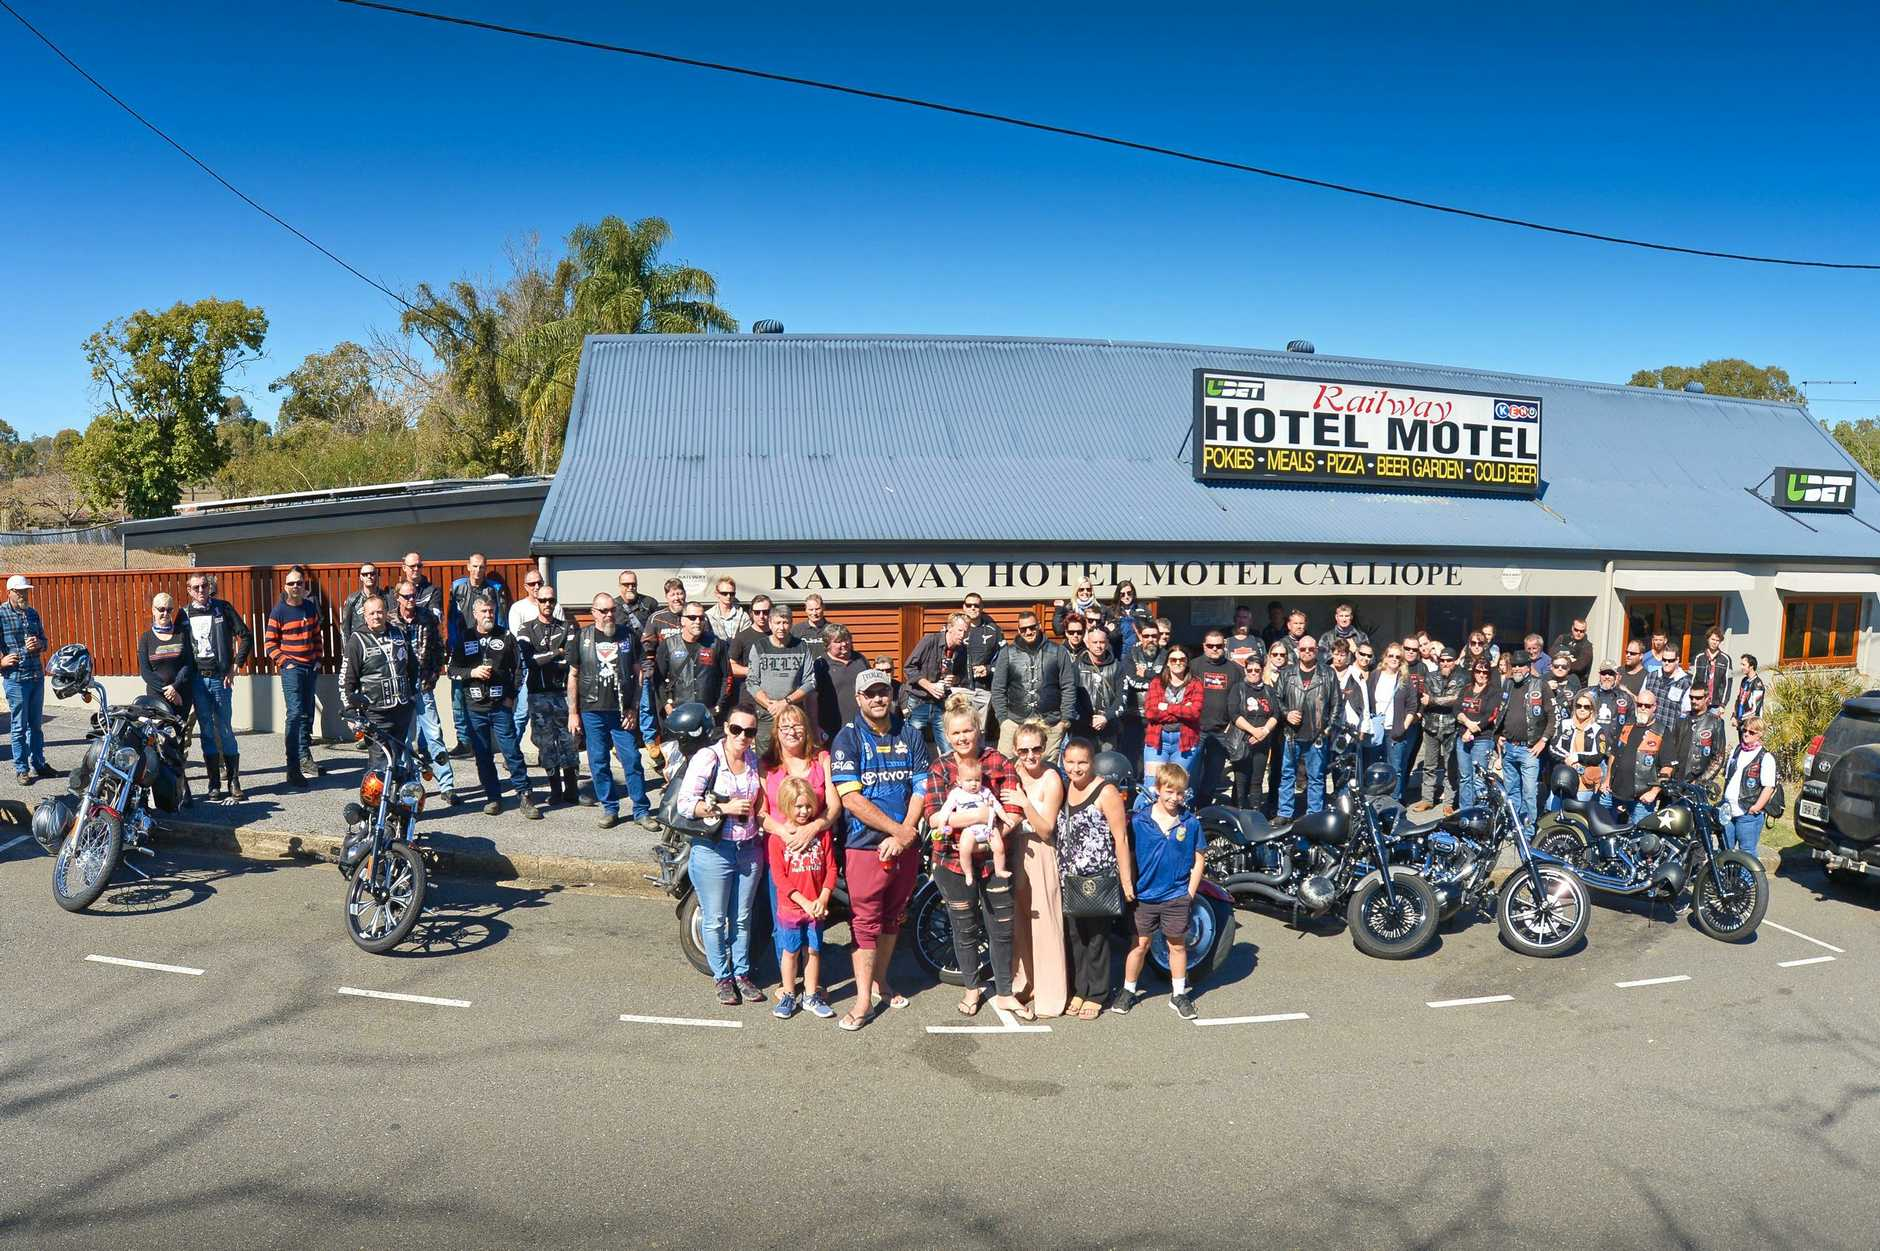 SUPPORT: Members of the Stone family and bike riders gathered at Calliope's Railway Hotel for a pit stop on the Ride For Bailey. It helped raise money to aid Bailey Stone (inset) who is in recovery.